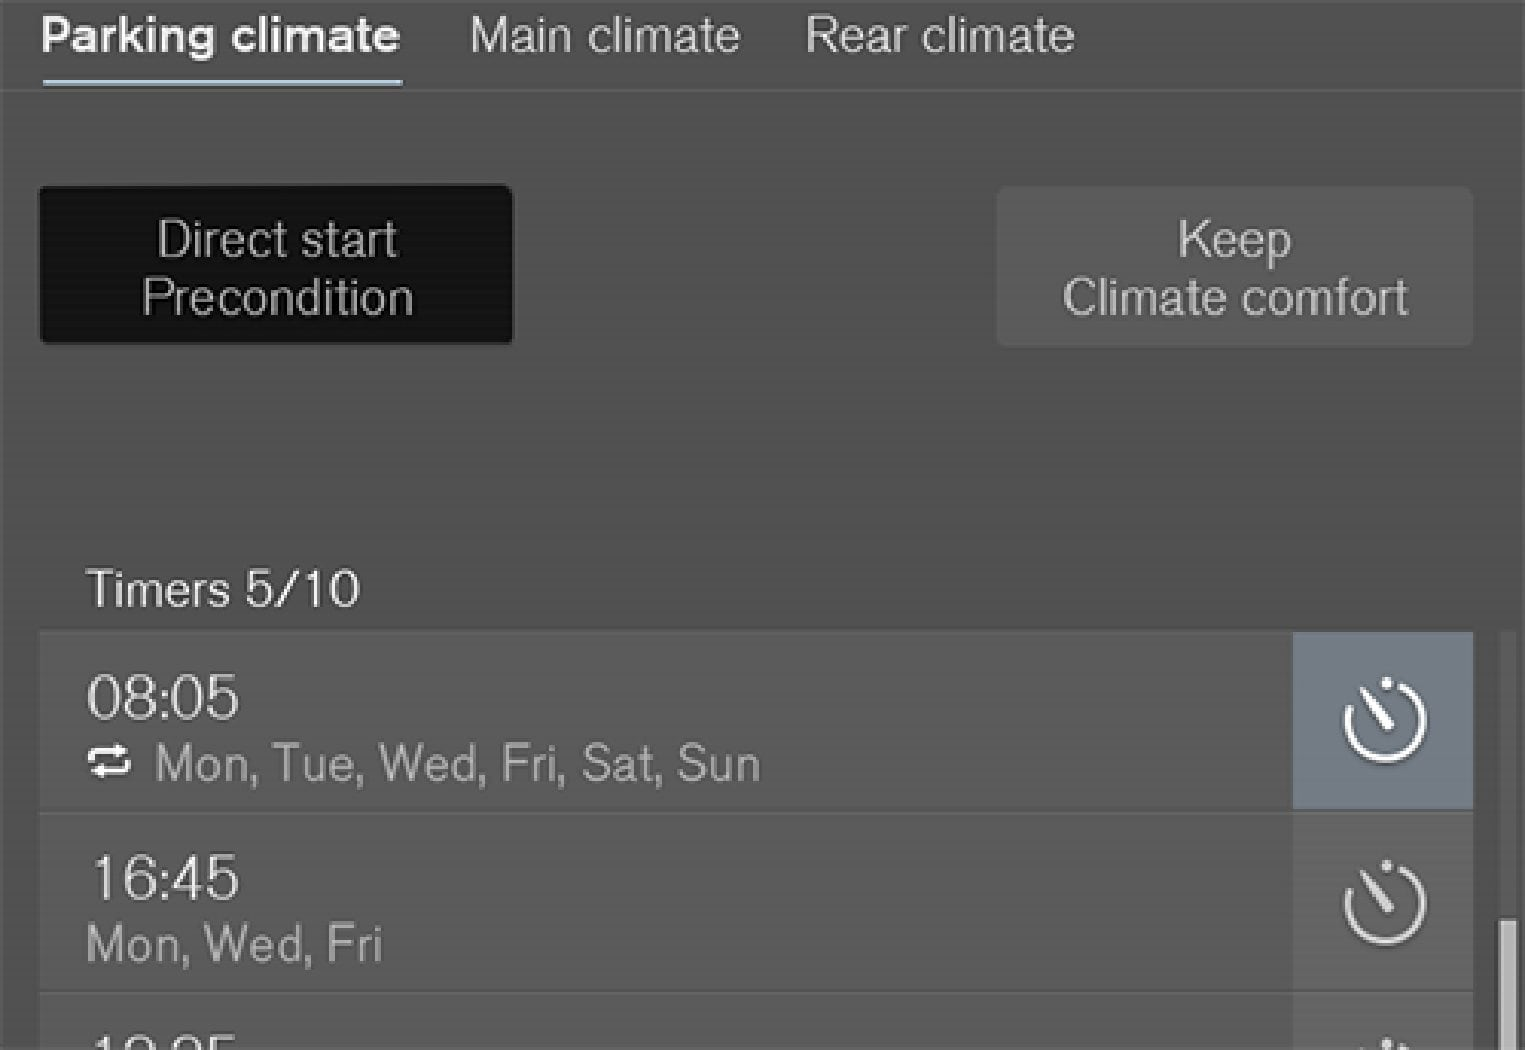 Preconditioning button in the Parking climate  tab in the climate view.